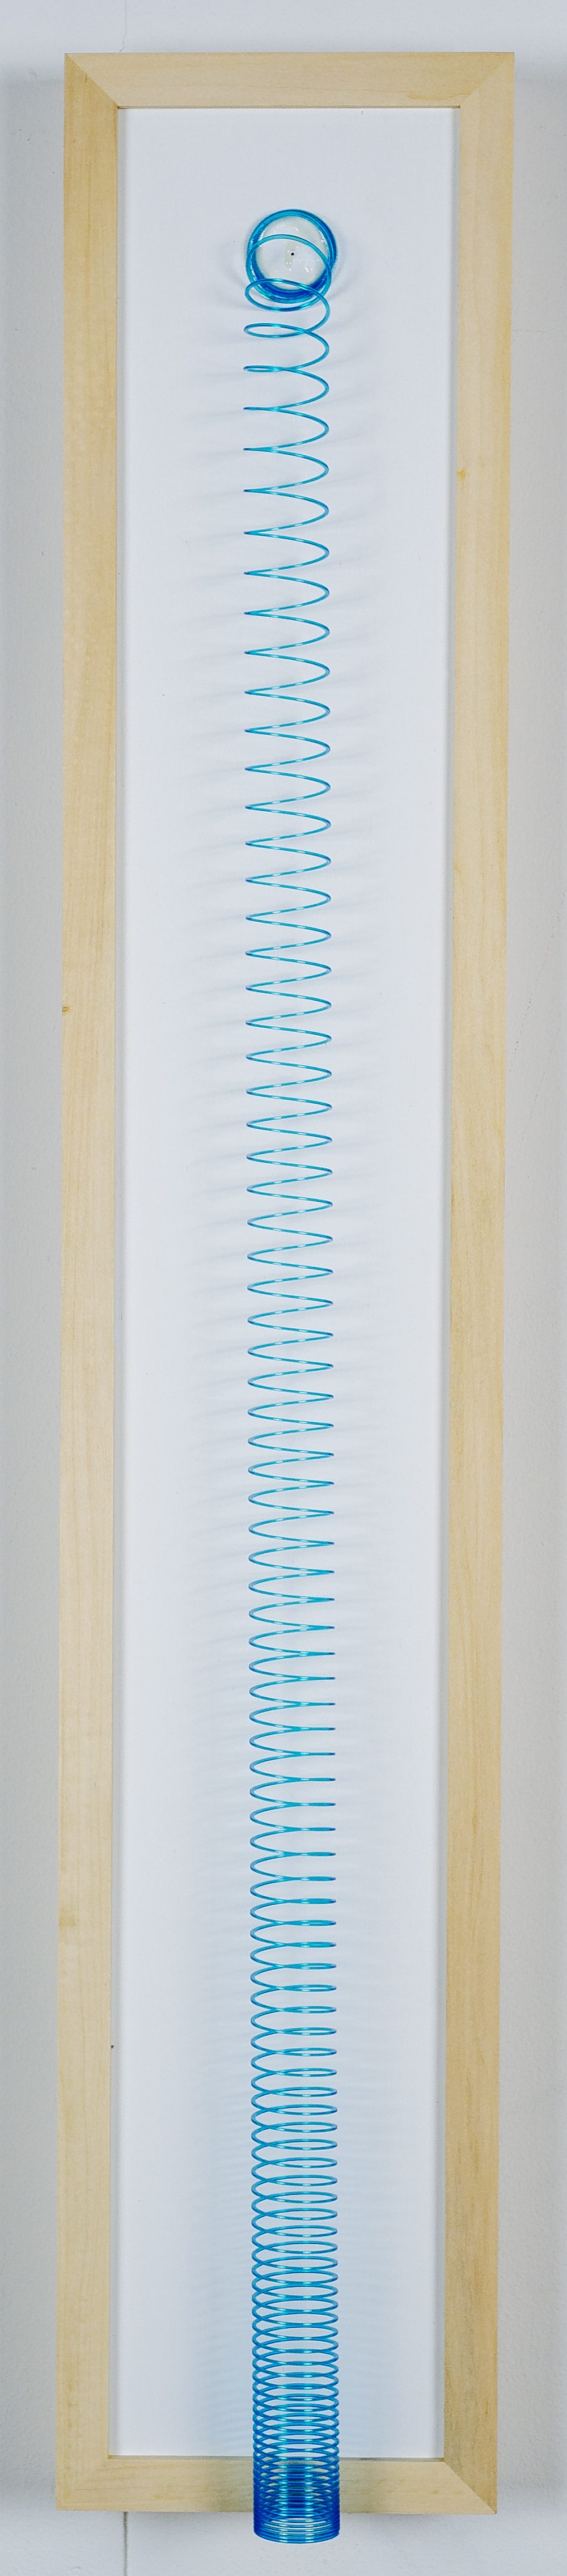 "Slinky  |   H. 34"" W. 9"" 